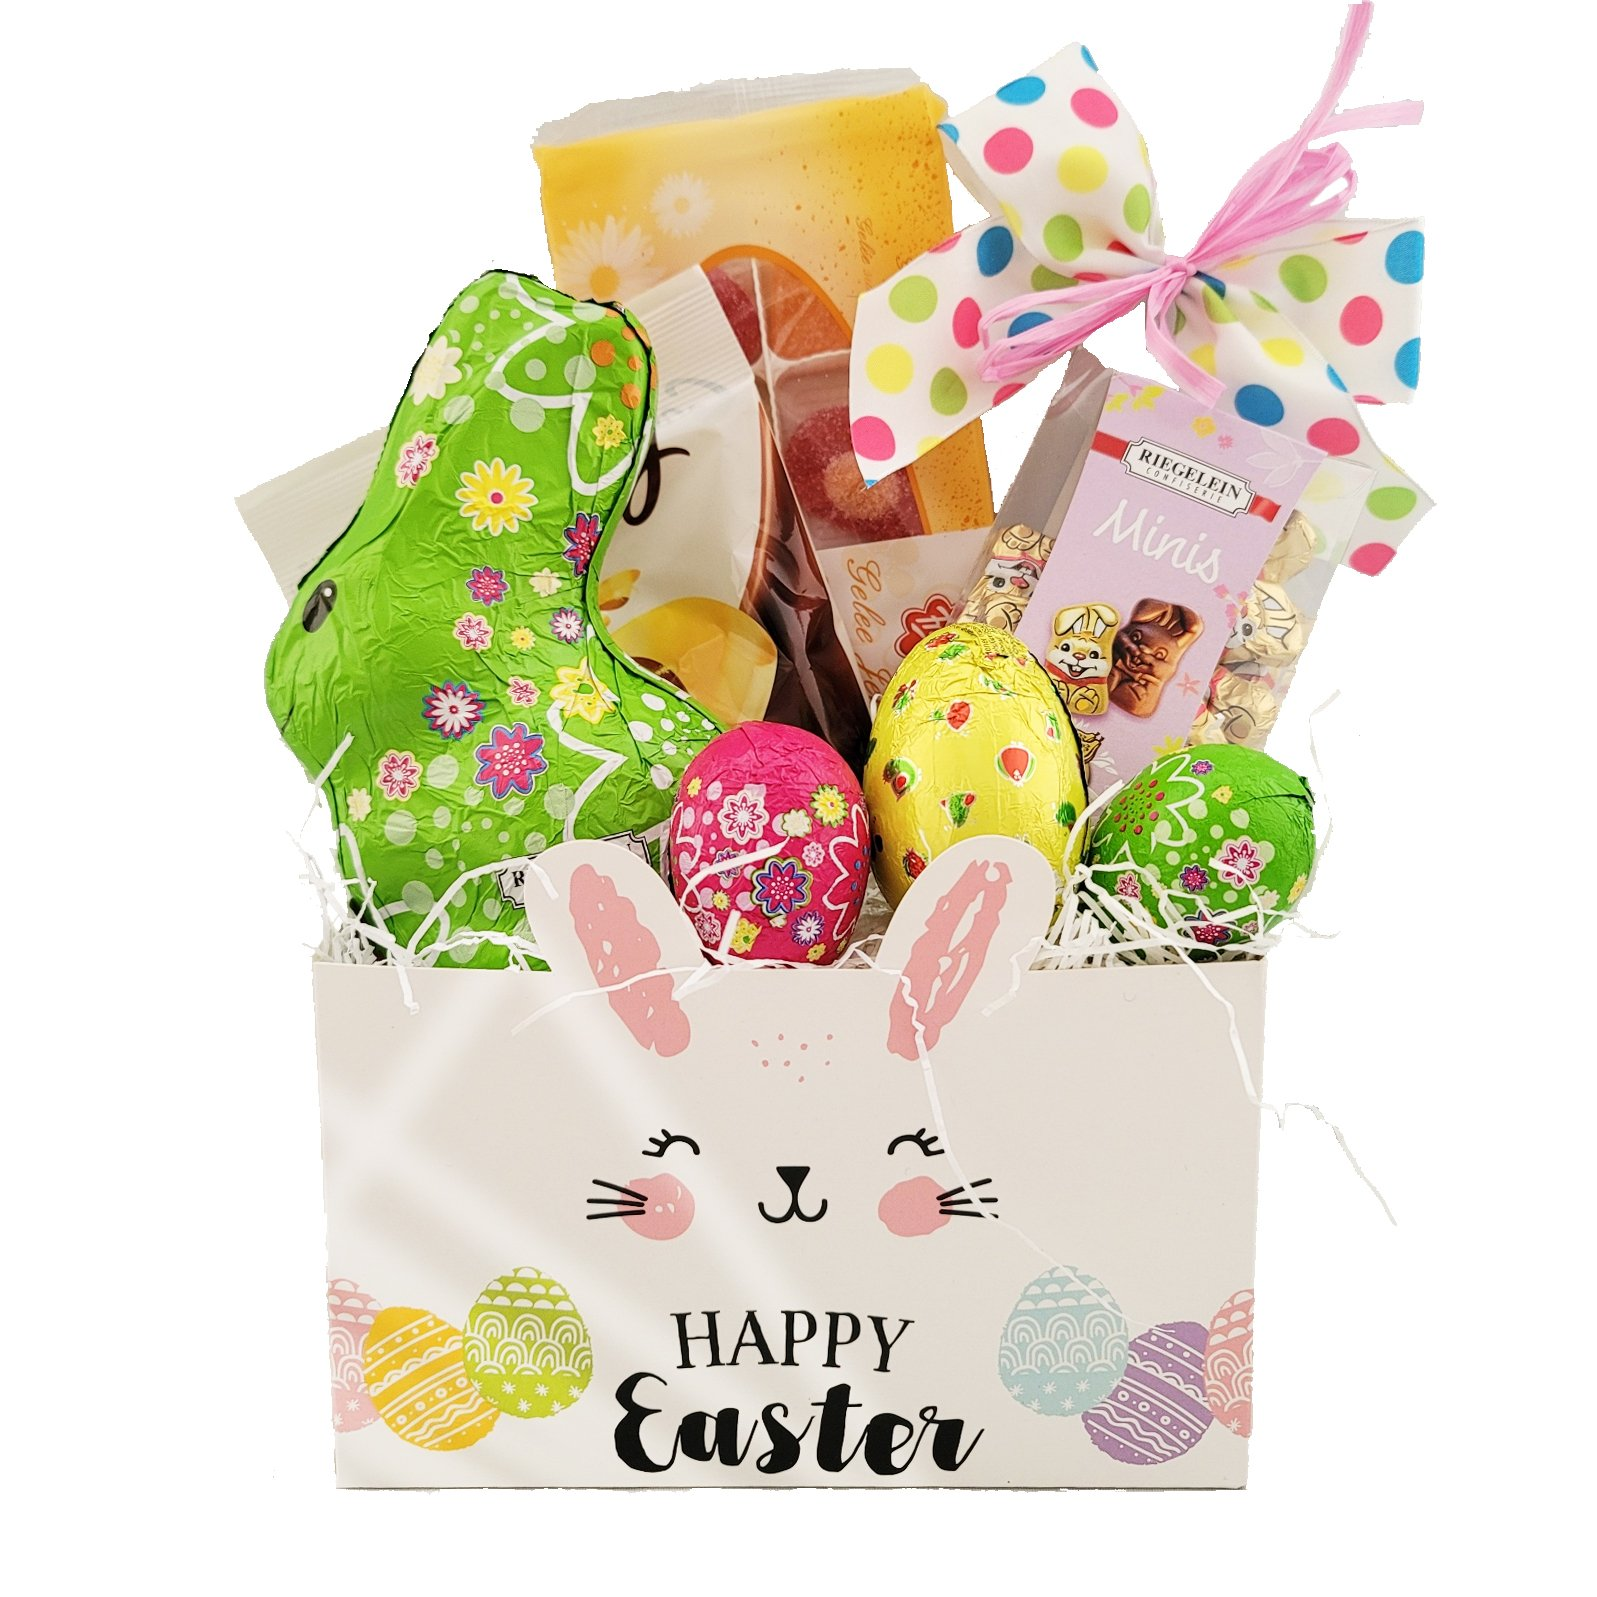 Happy Easter Bunny and Treats Basket